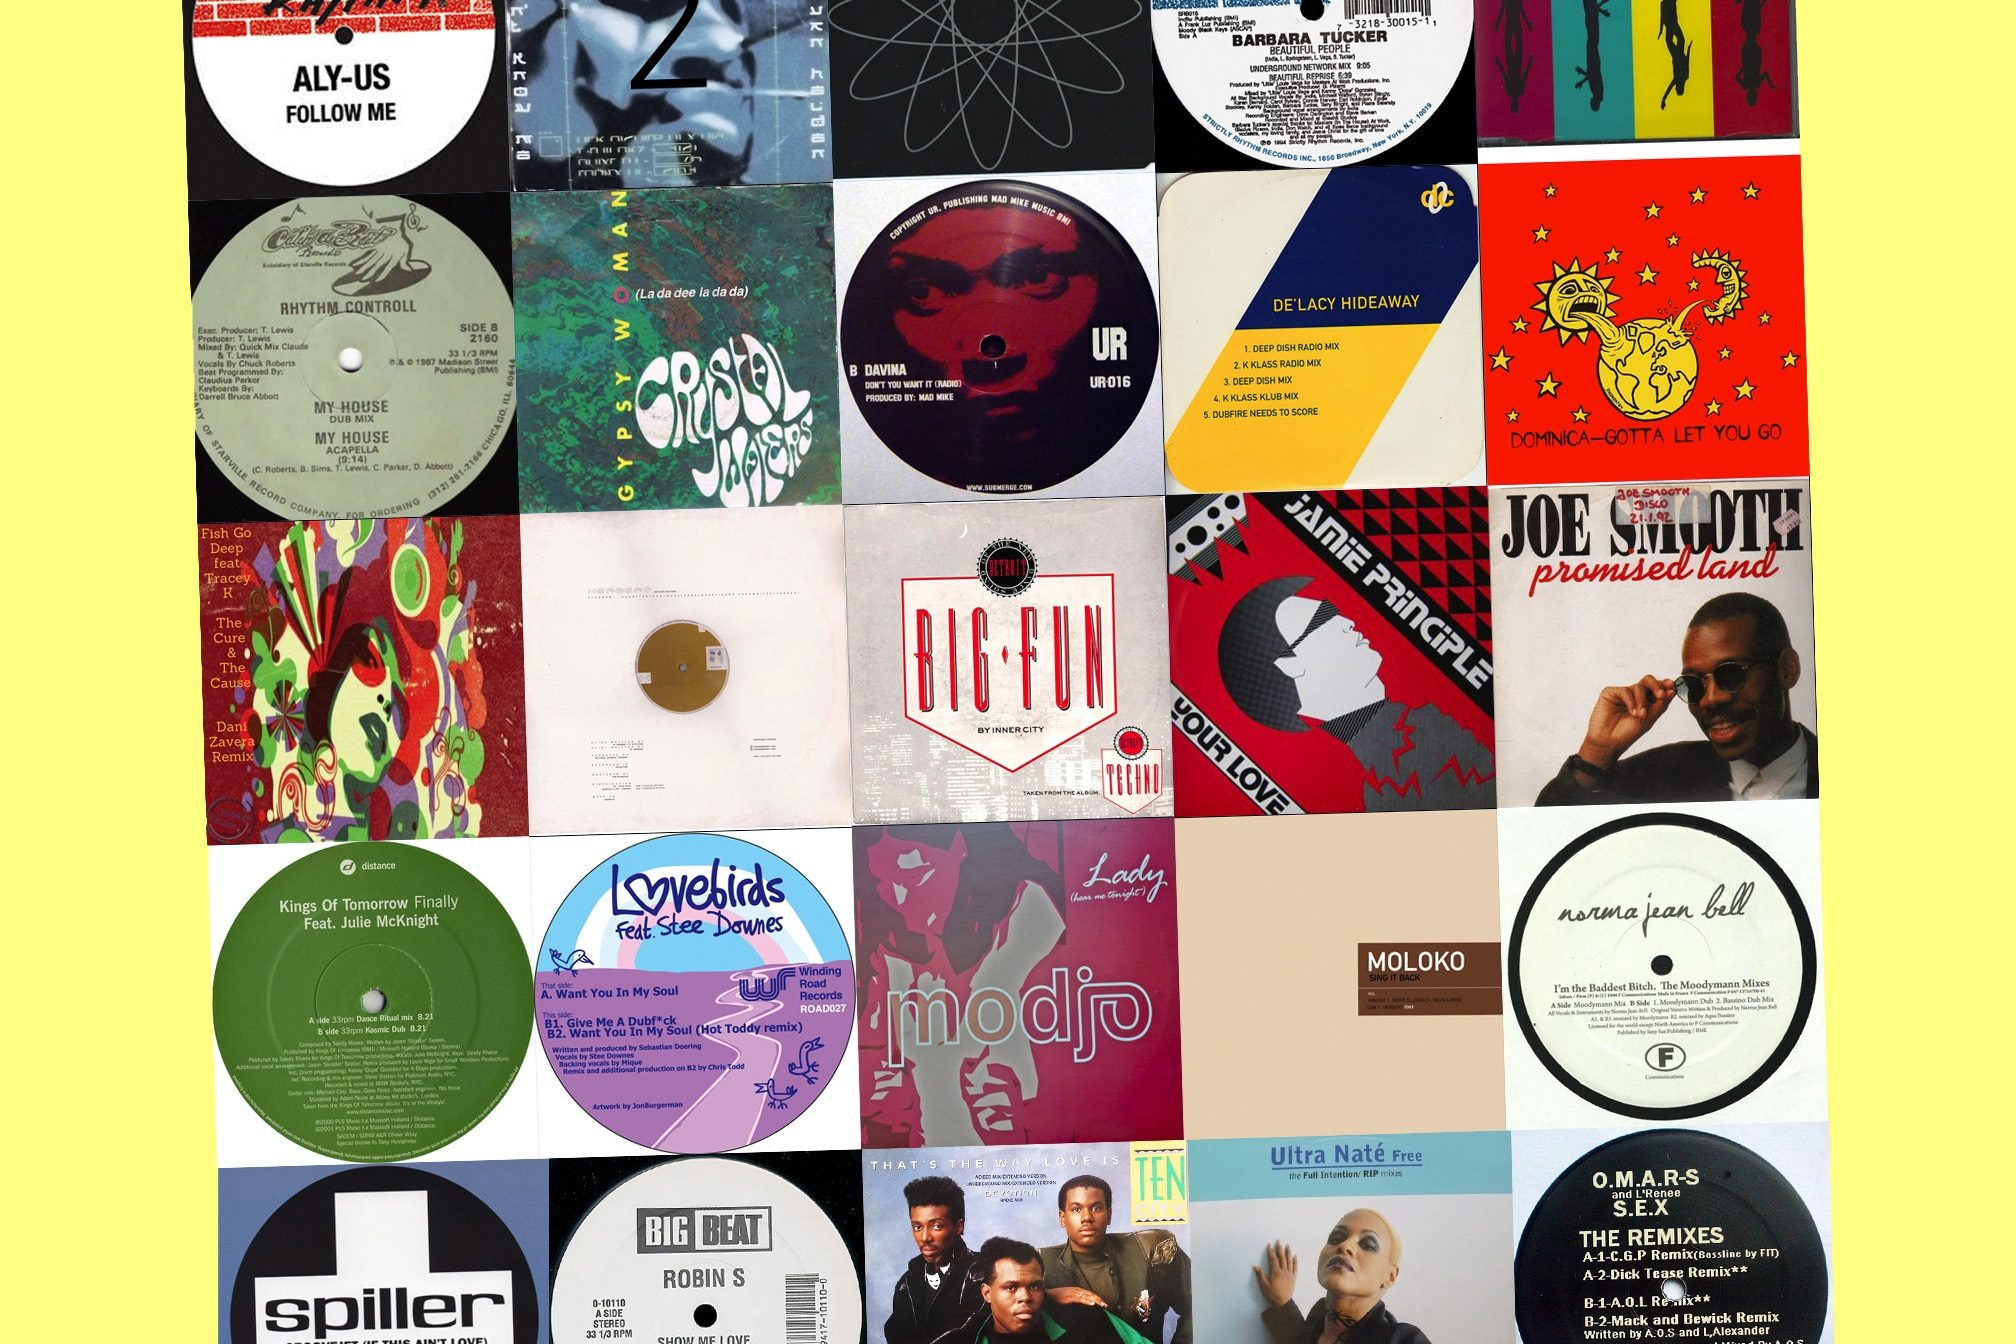 The 30 best vocal house anthems ever - Lists - Mixmag